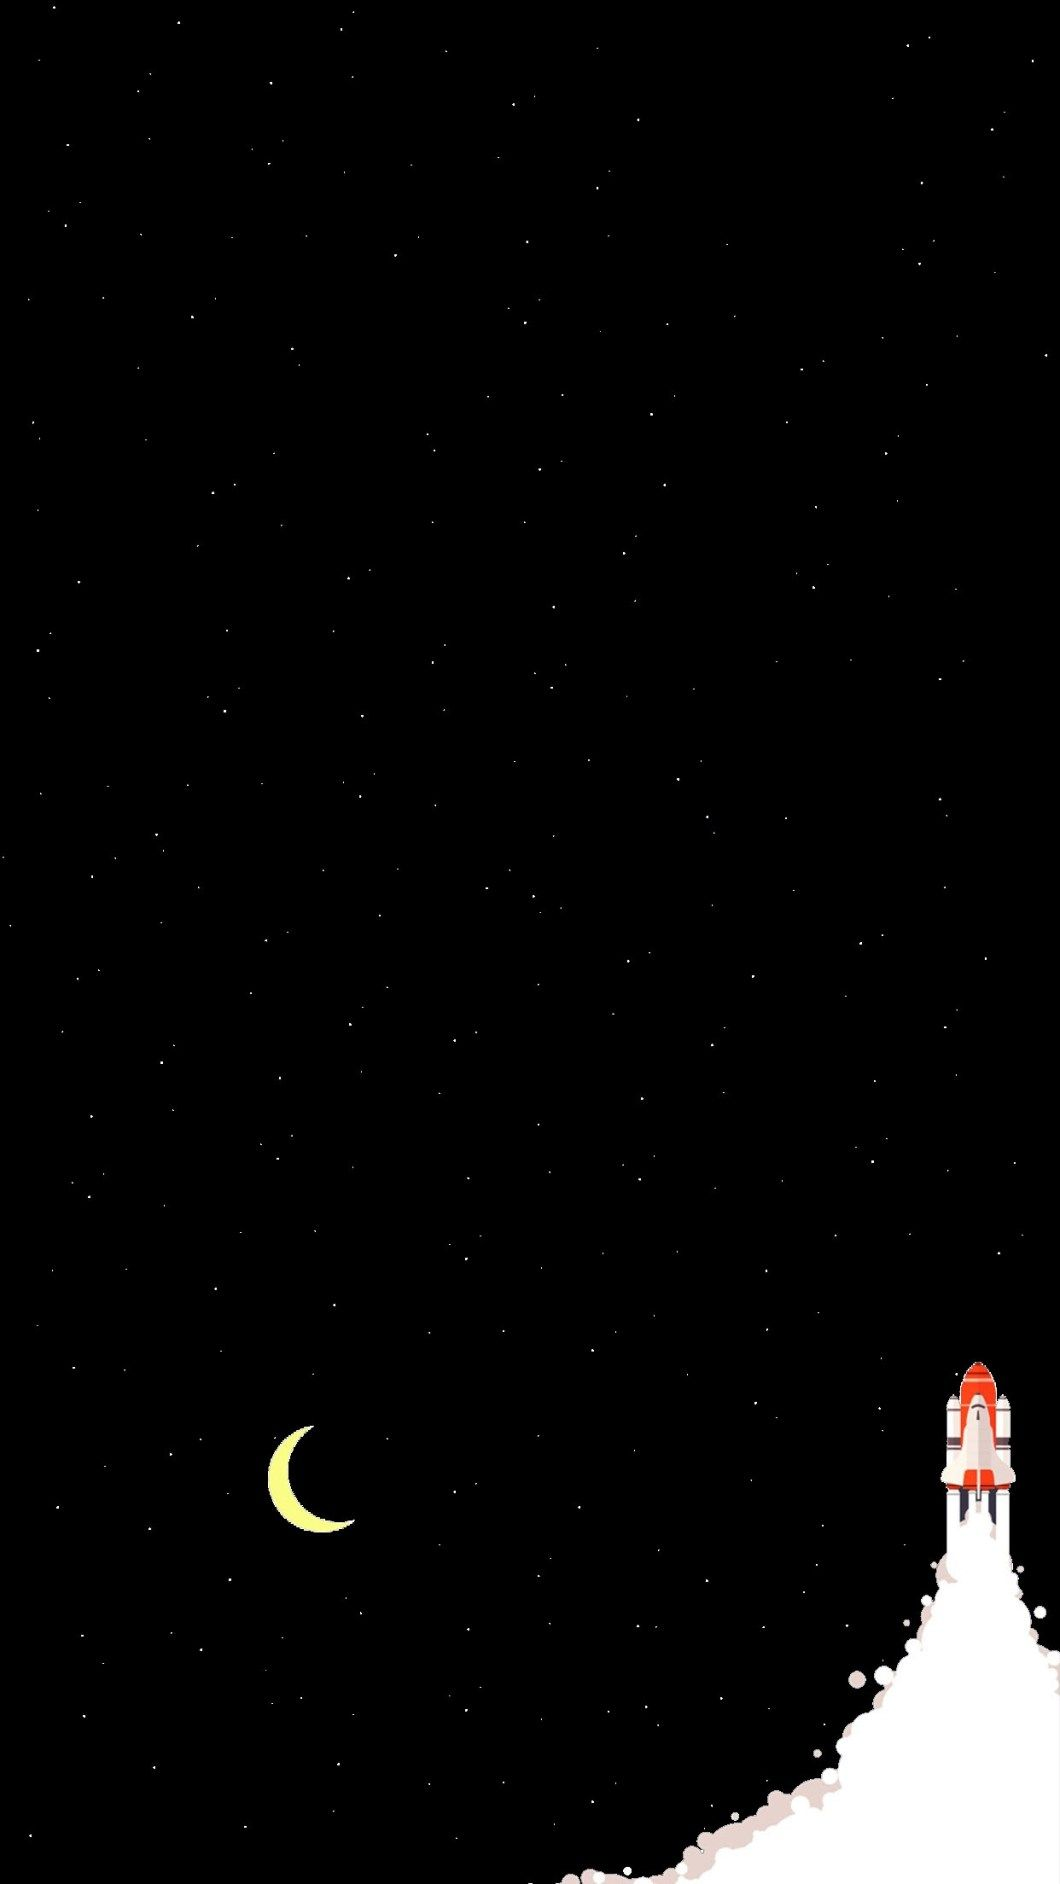 cool starry night space rocket iphone night space cool starry night space rocket iphone 6